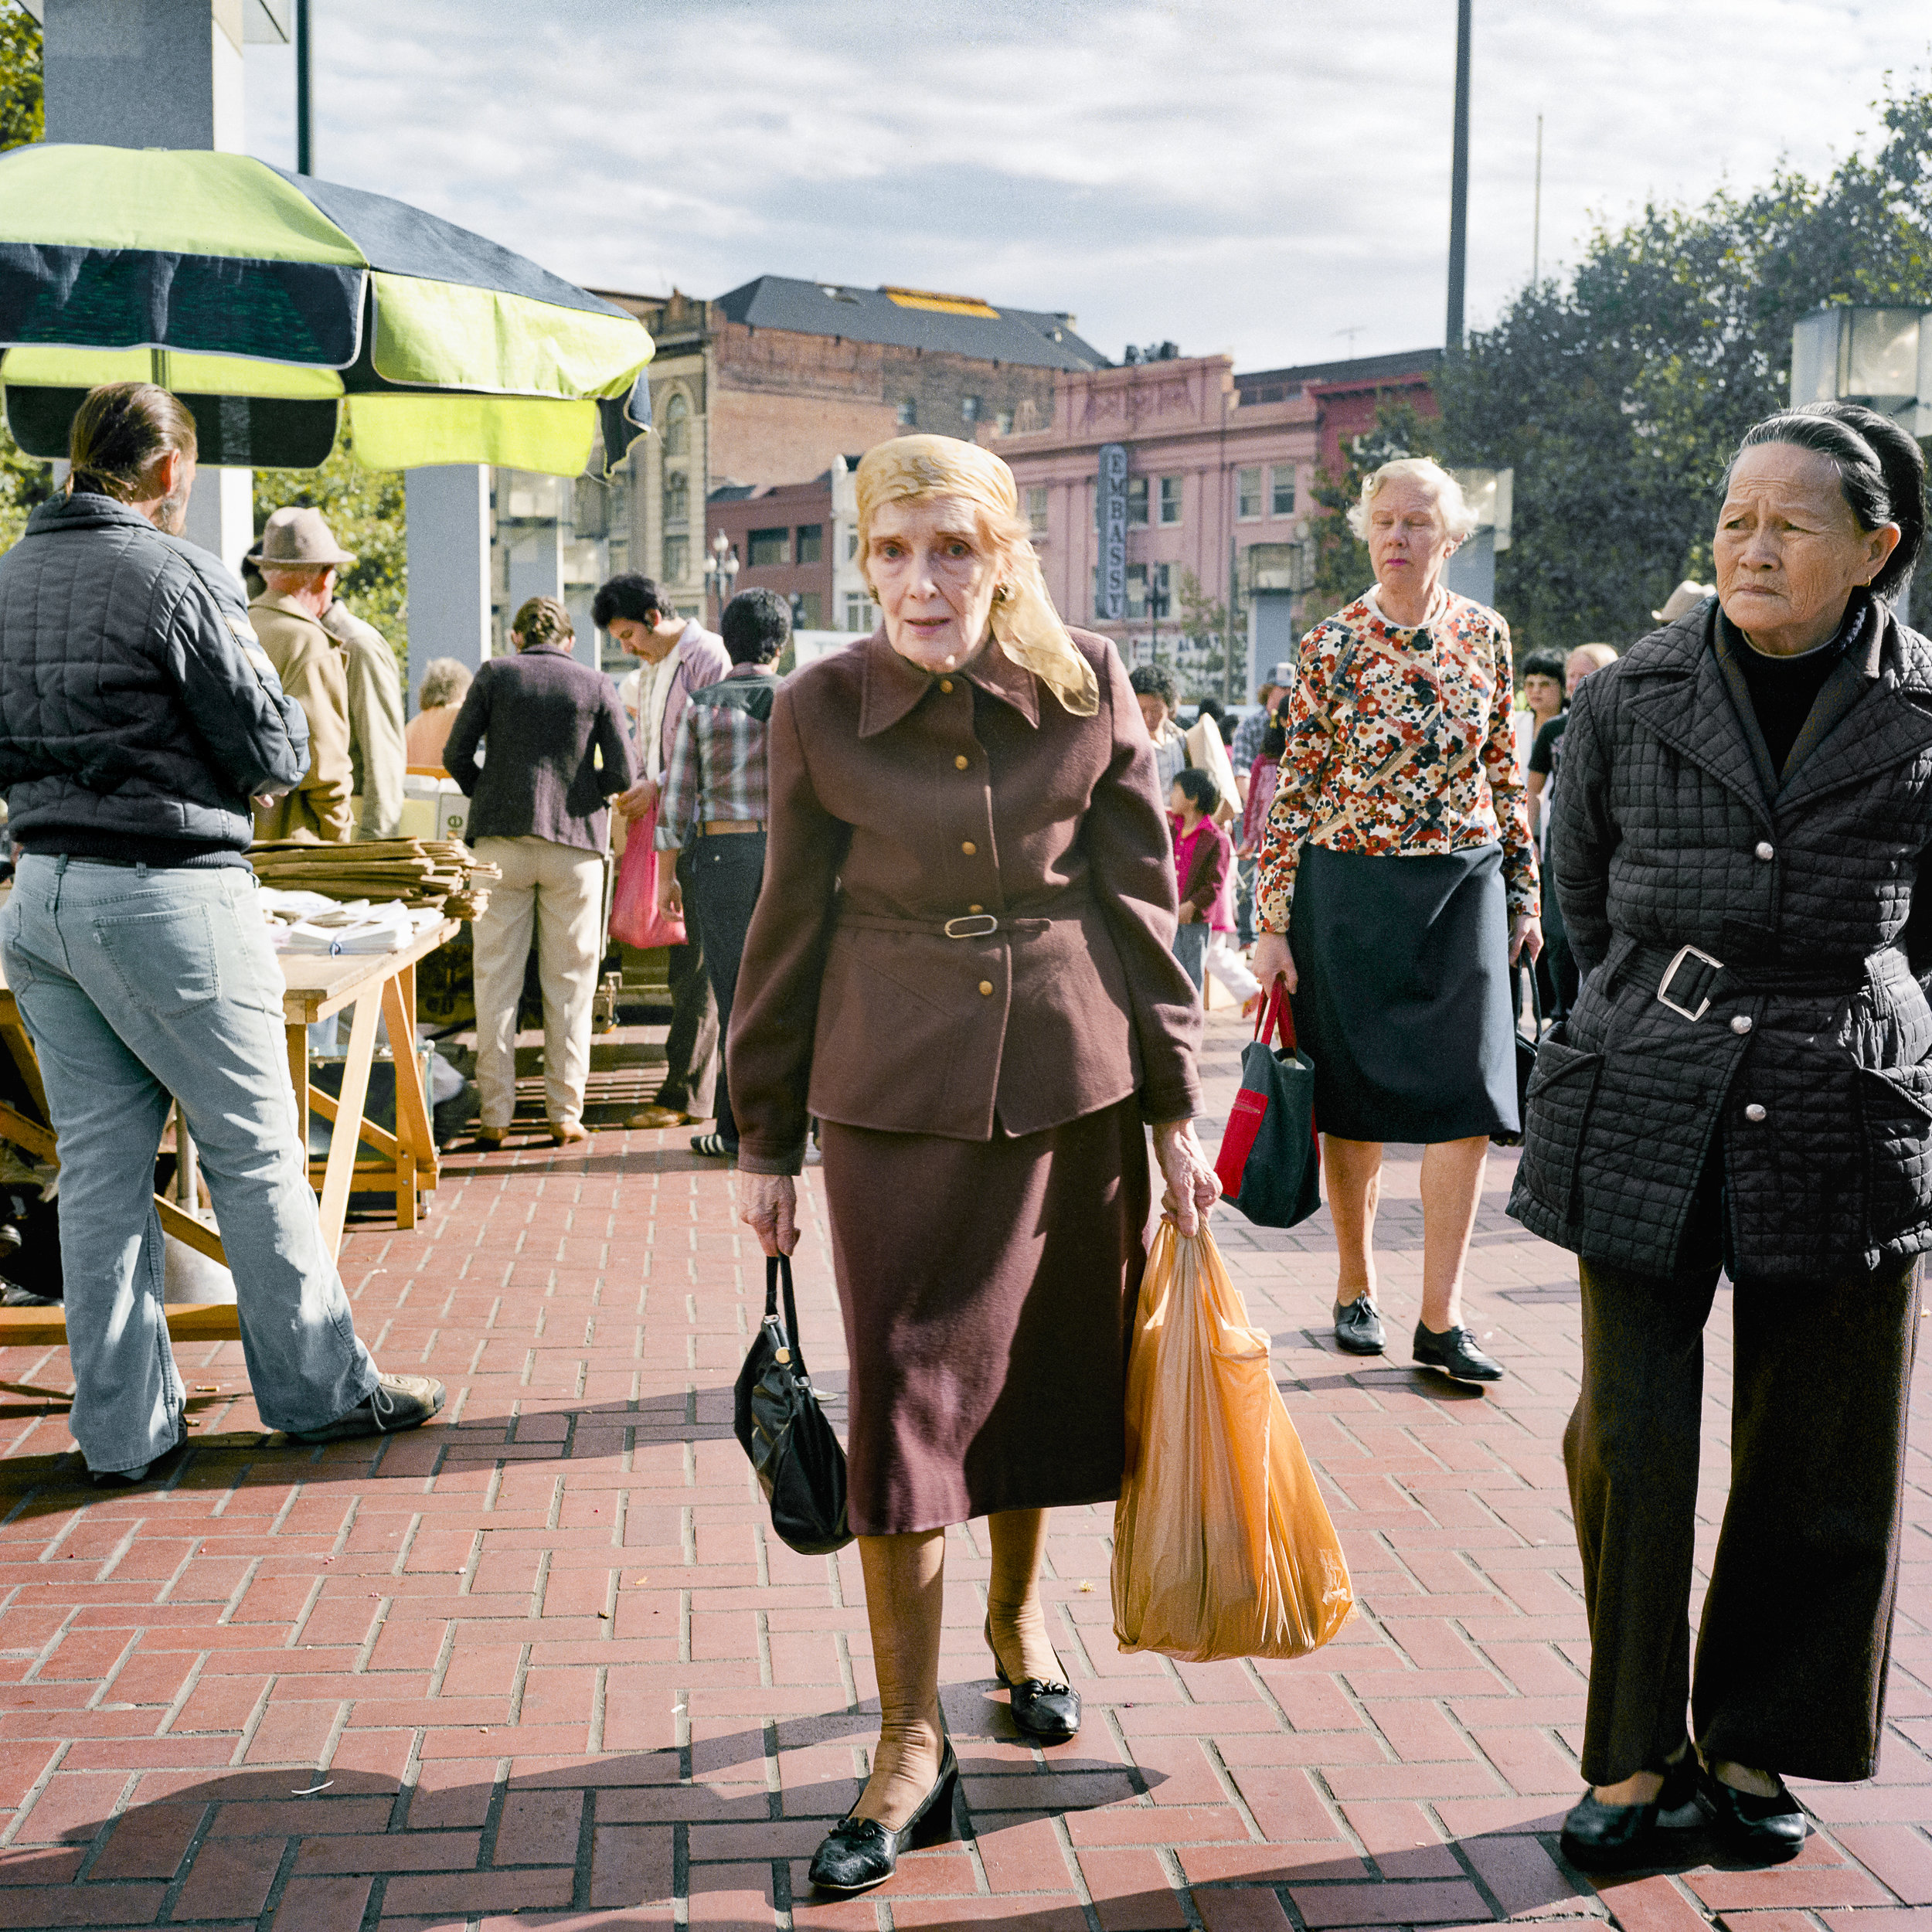 JANET DELANEY  Woman in Brown Suit,   1983  from  Public Matters  Archival Pigment Print, 2018  Available in 2 sizes 9 x 9 inches, edition of 7 + 2AP 15 x 15 inches, edition of 3 + 2AP